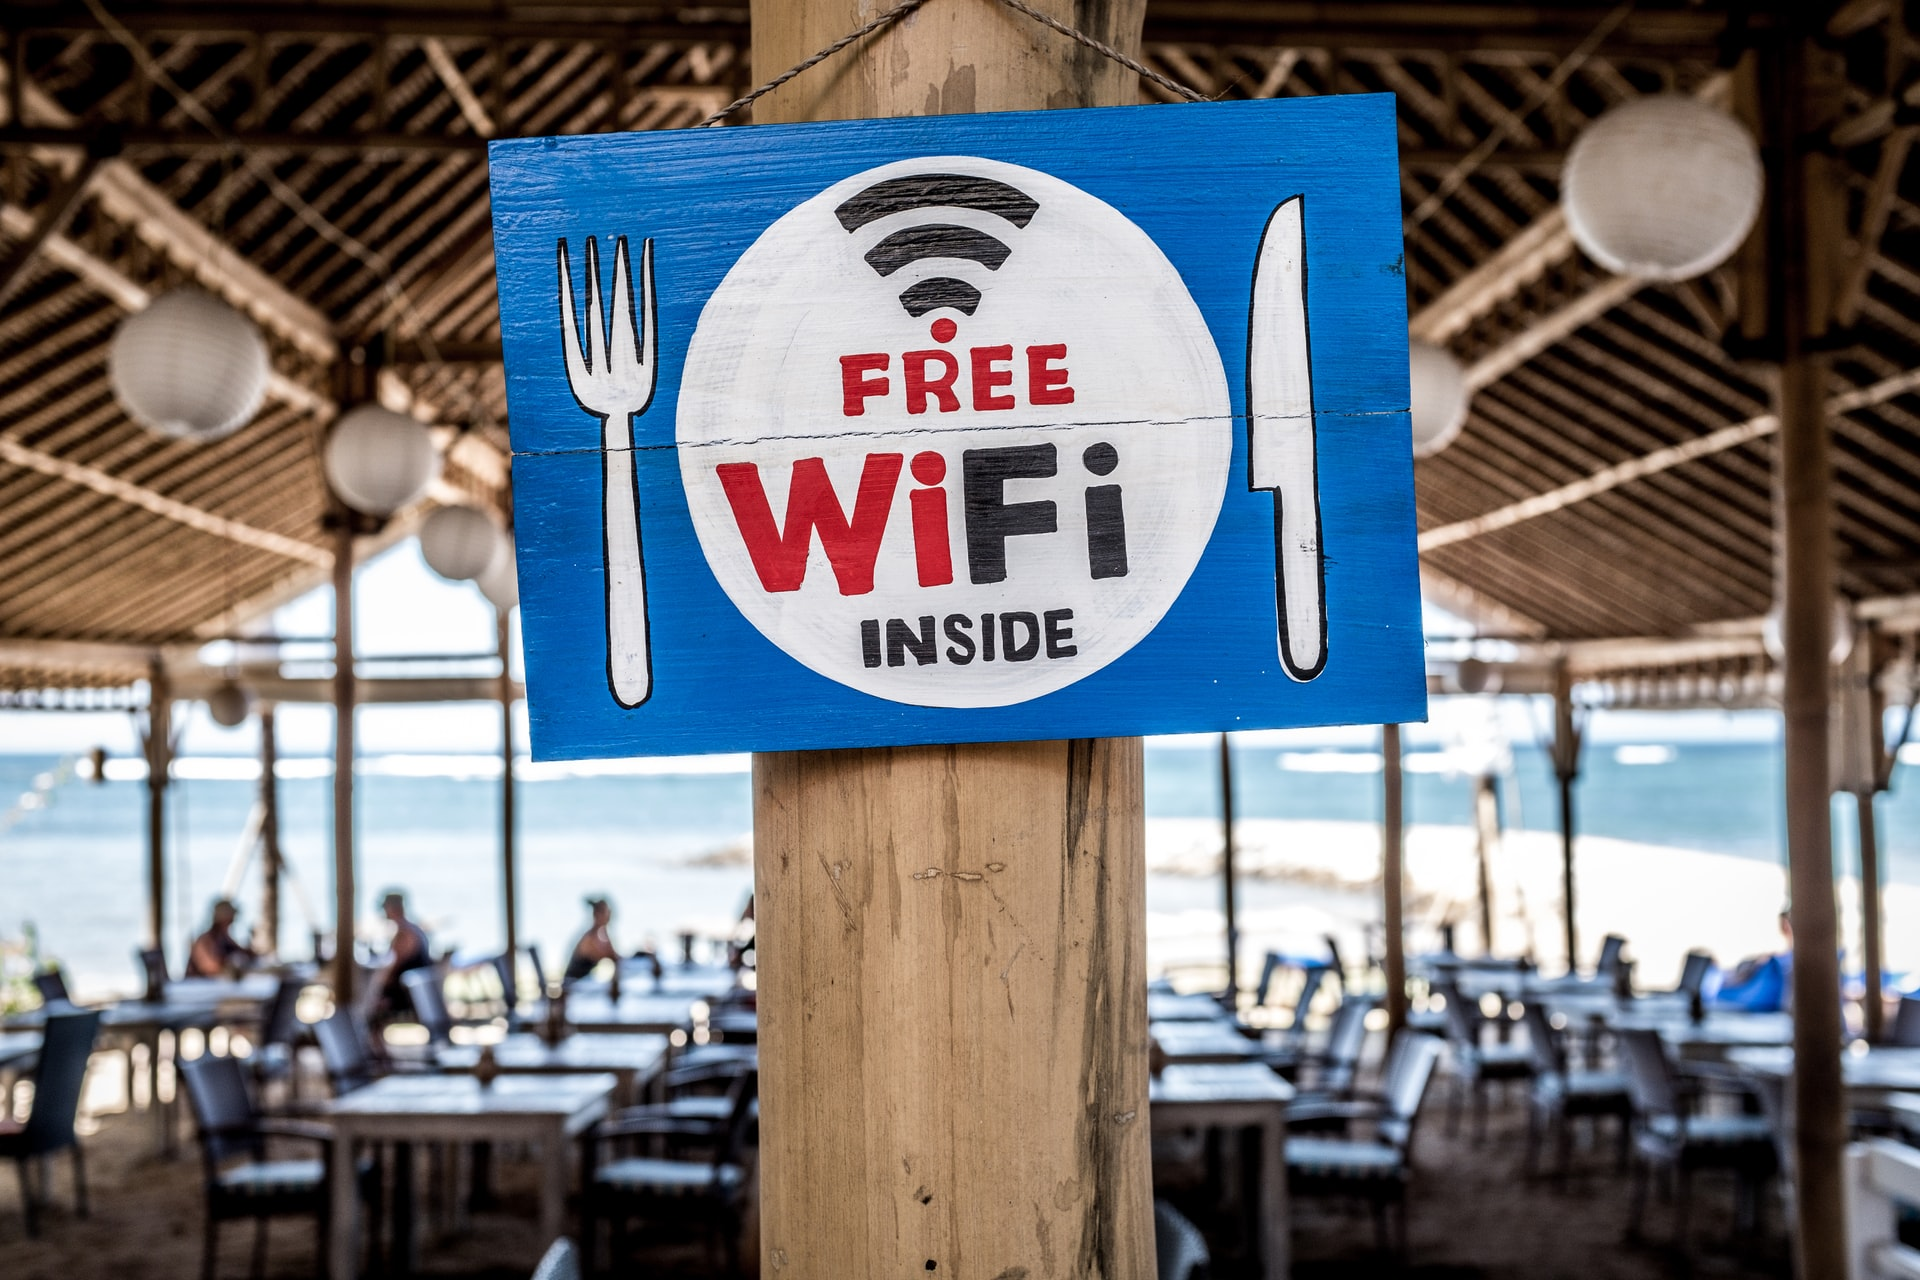 Learn How to Connect to Nearby Wi-Fi for Free